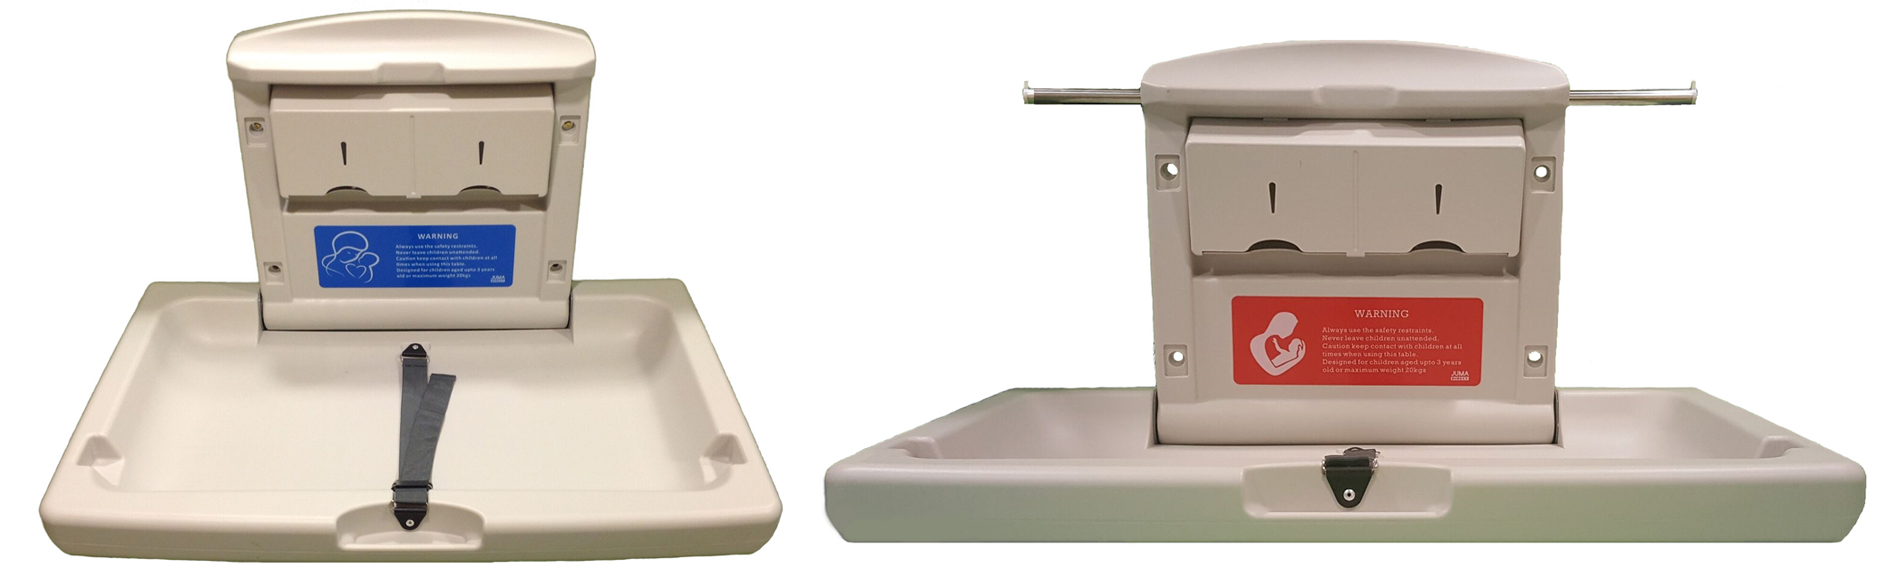 Harmony & Pebbles baby changing tables